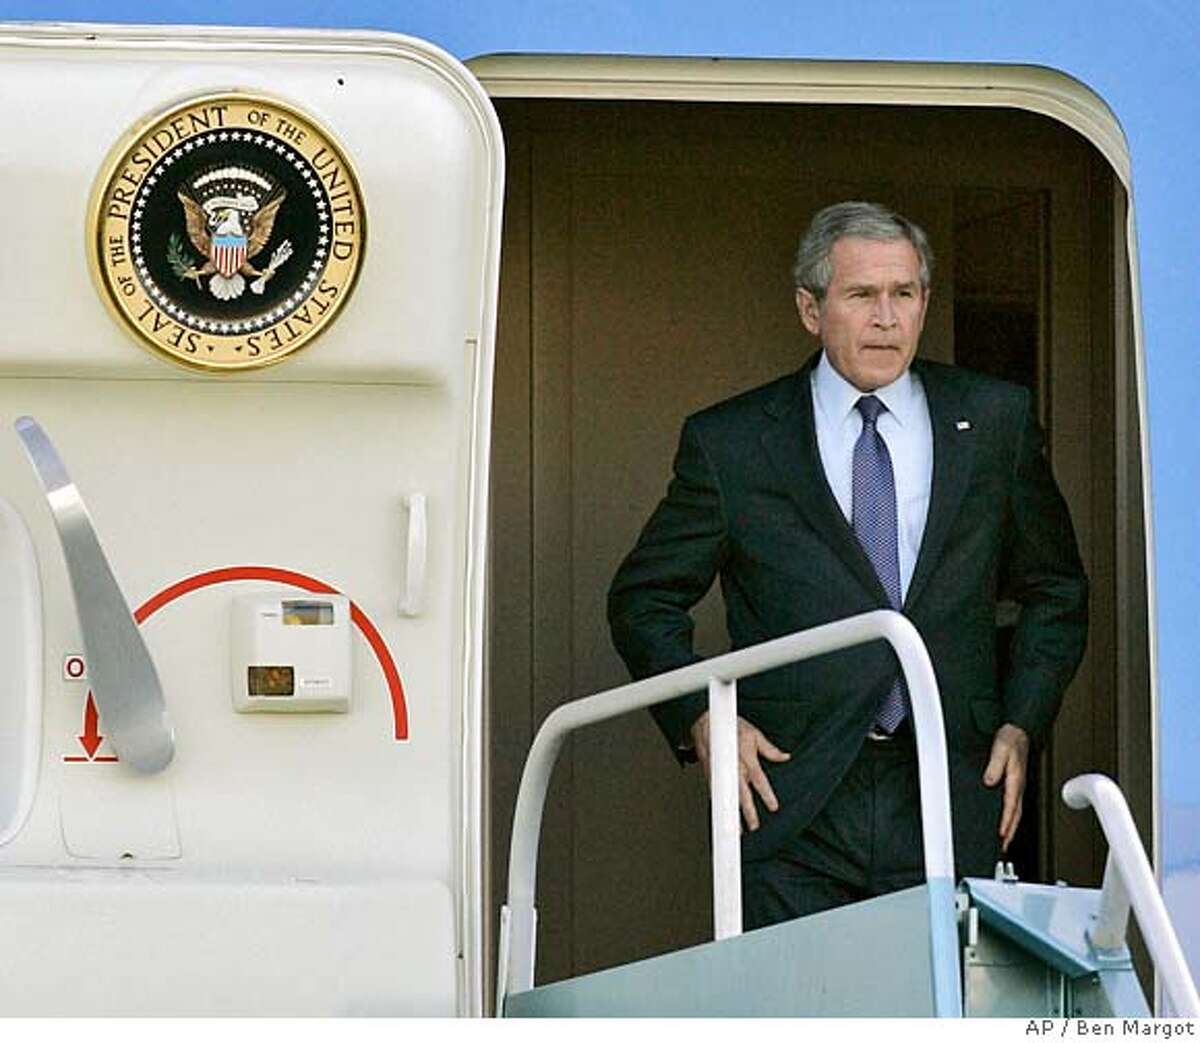 President George Bush disembarks Air Force One Wednesday, Jan. 30, 2008, in San Francisco, Calif. (AP Photo/Ben Margot)